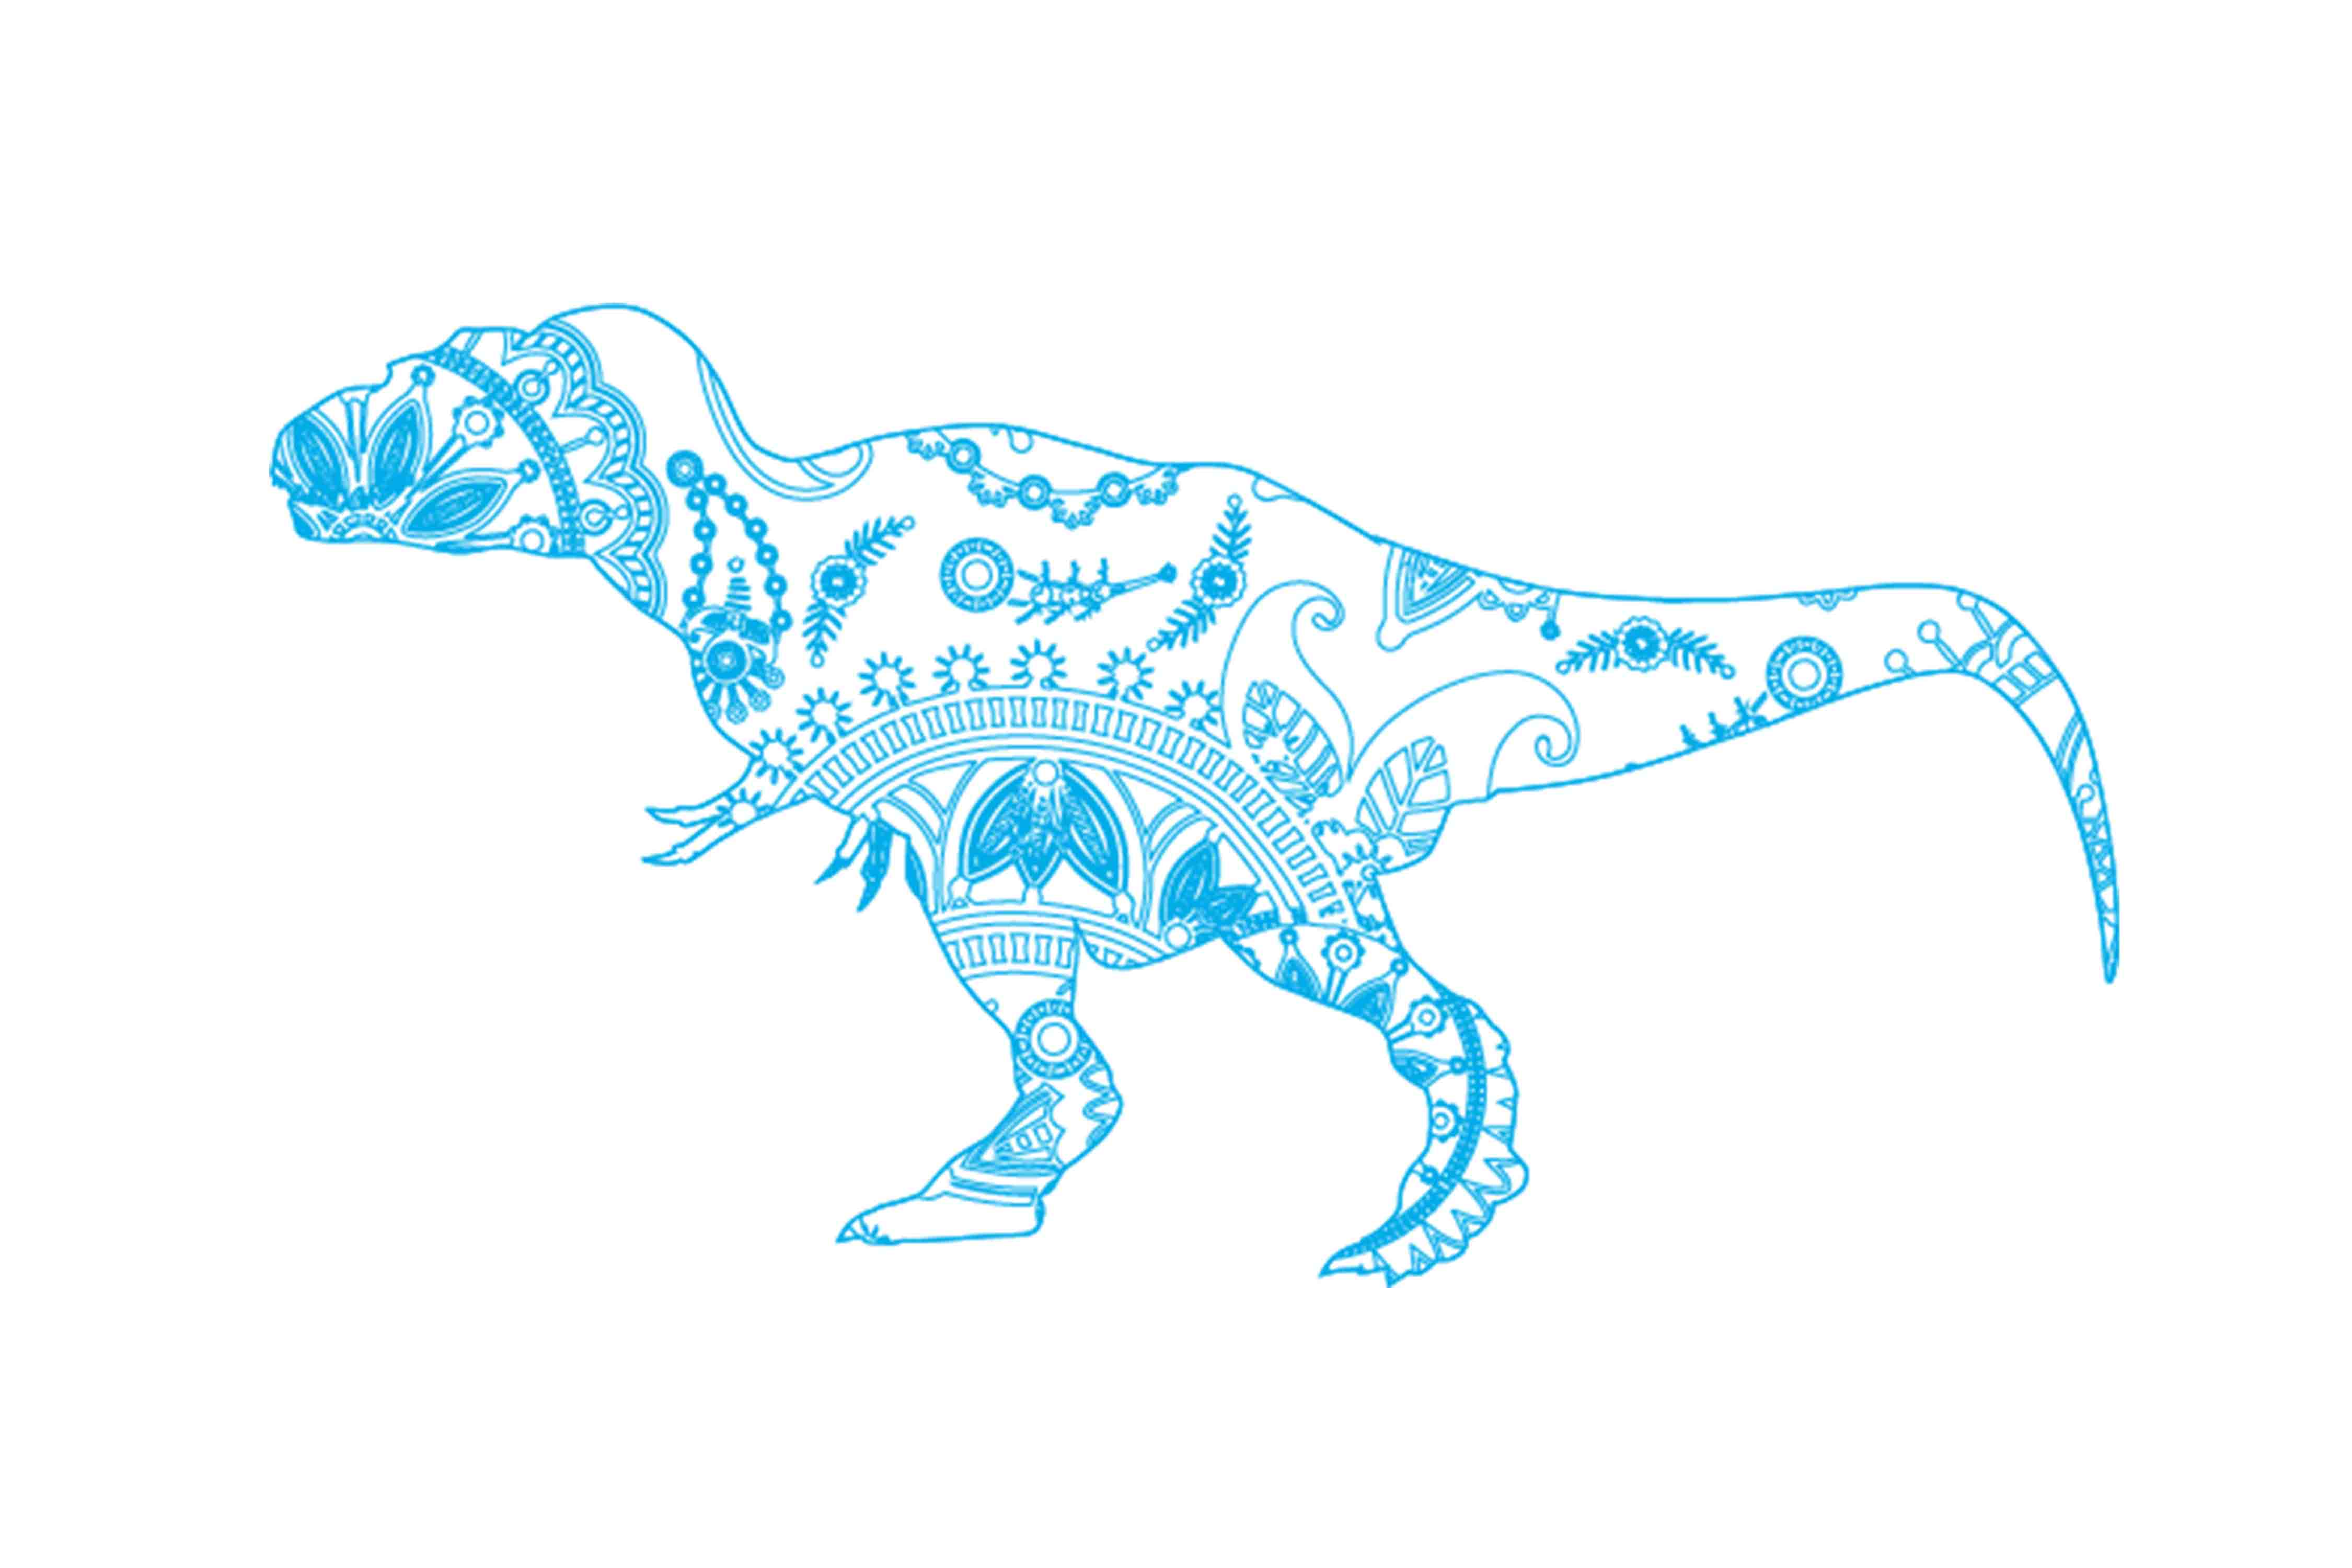 Download Free Mandala Dinosaur Graphic By Twelvepapers Creative Fabrica for Cricut Explore, Silhouette and other cutting machines.